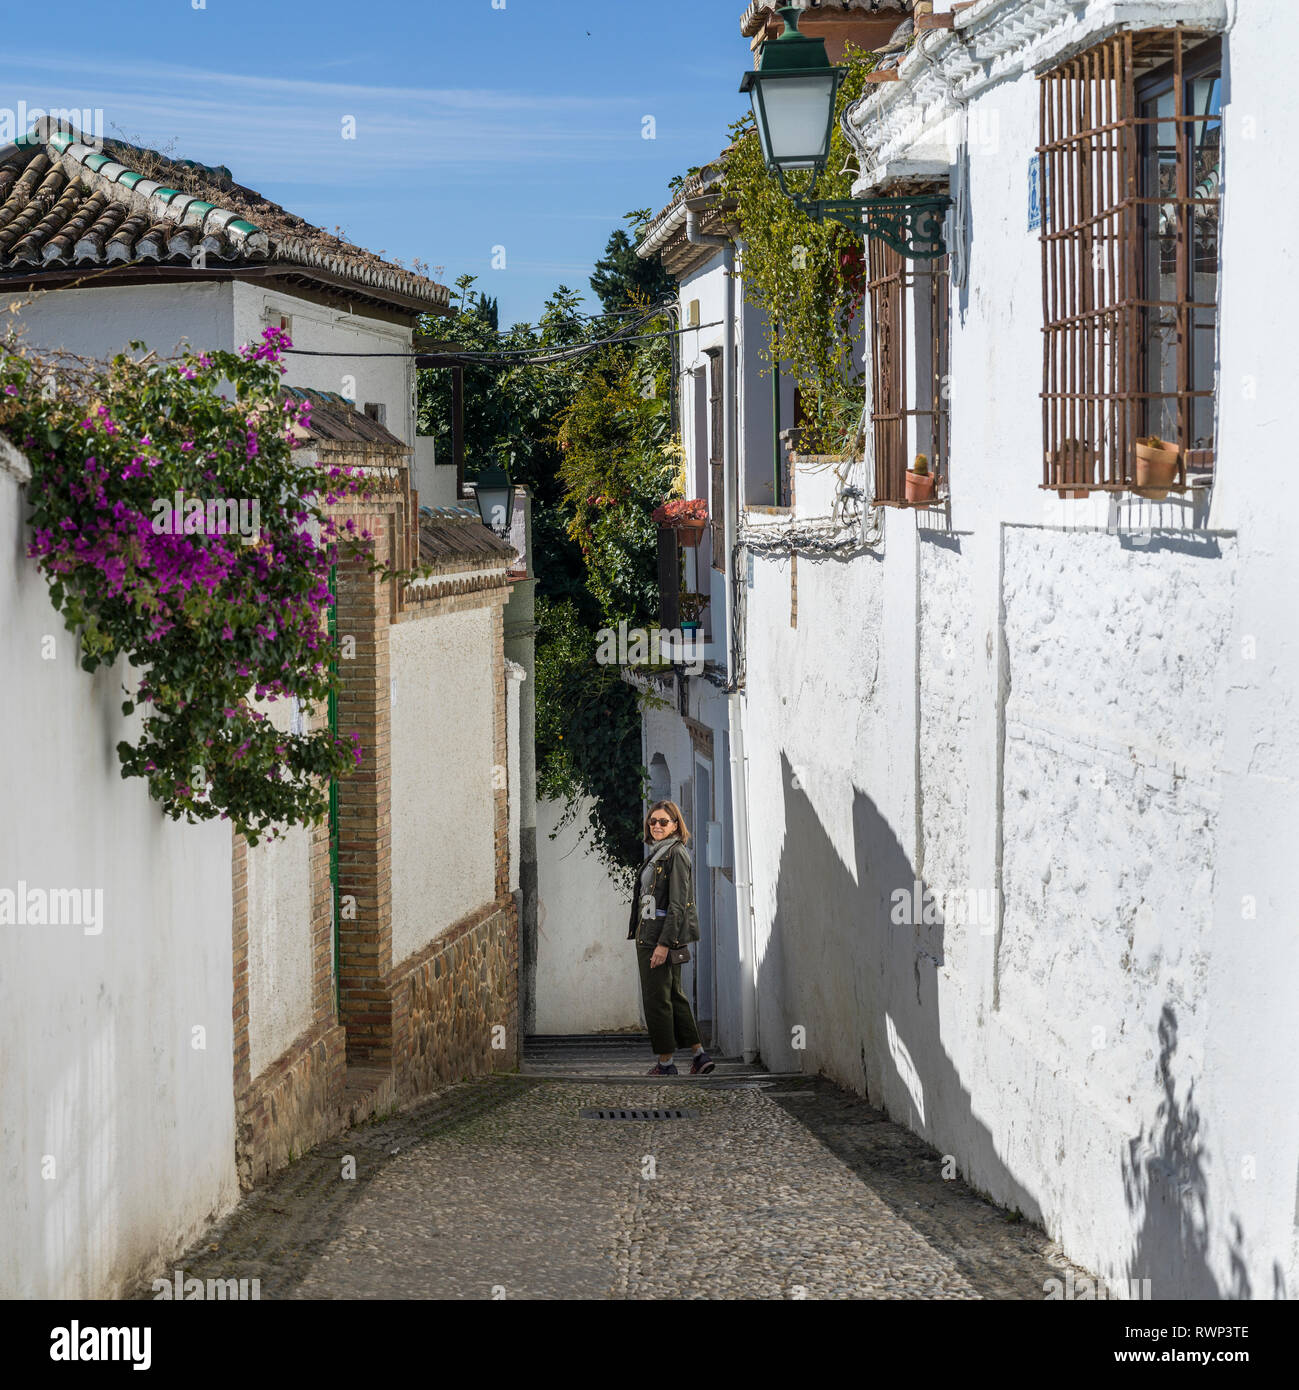 A woman stands posing on a narrow walkway between the whitewash walls of houses; Granada, Spain - Stock Image